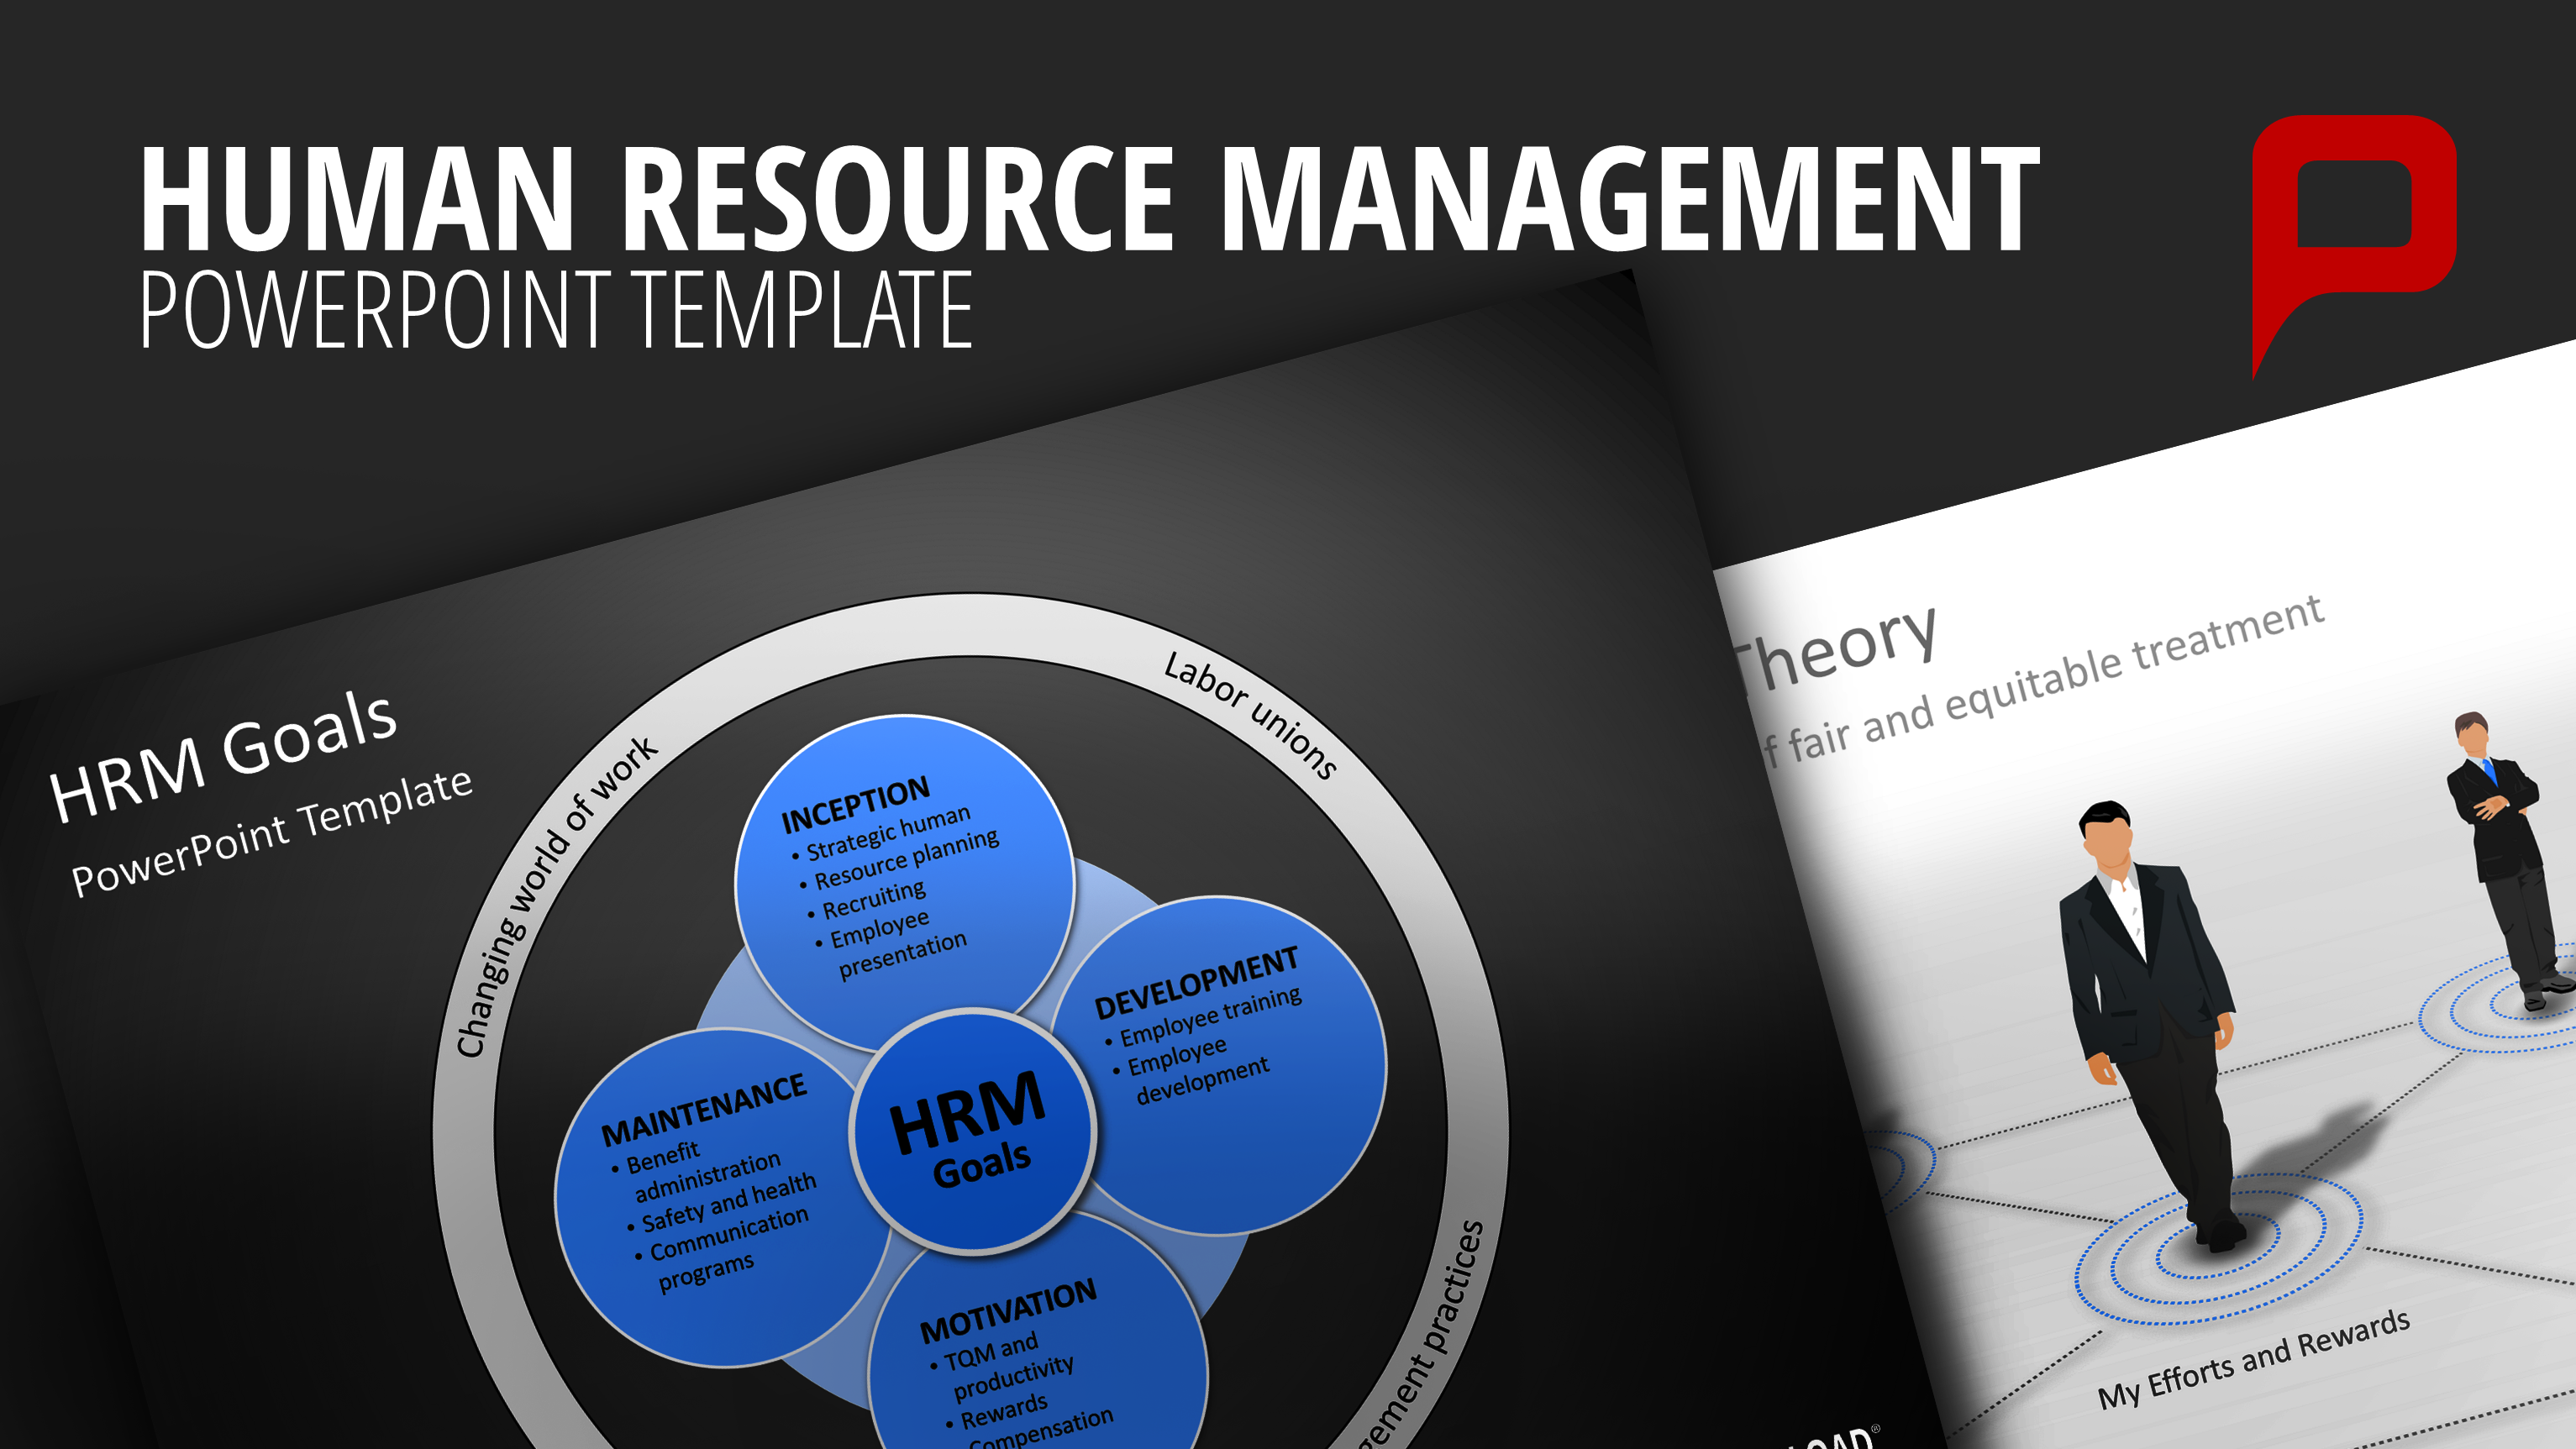 Pin by christine choo on human resources mgmt pinterest resource discover ideas about resource management with powerpoint templates maxwellsz